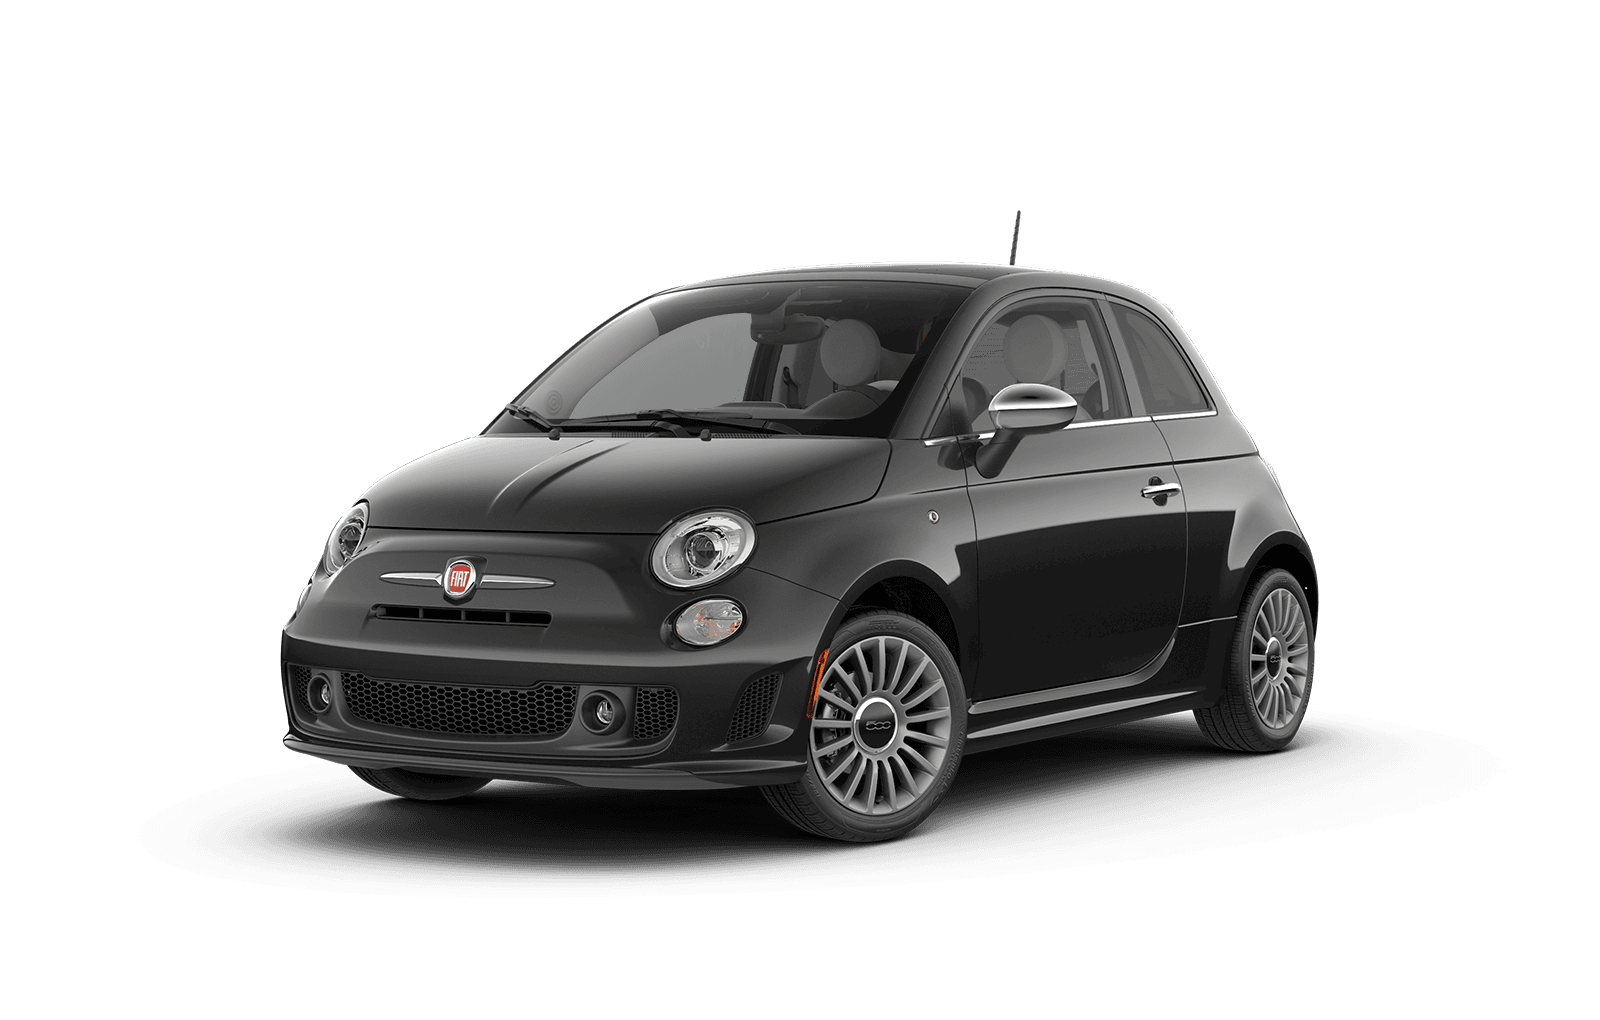 2019 FIAT 500 Full View in Dark Grey with Wheels